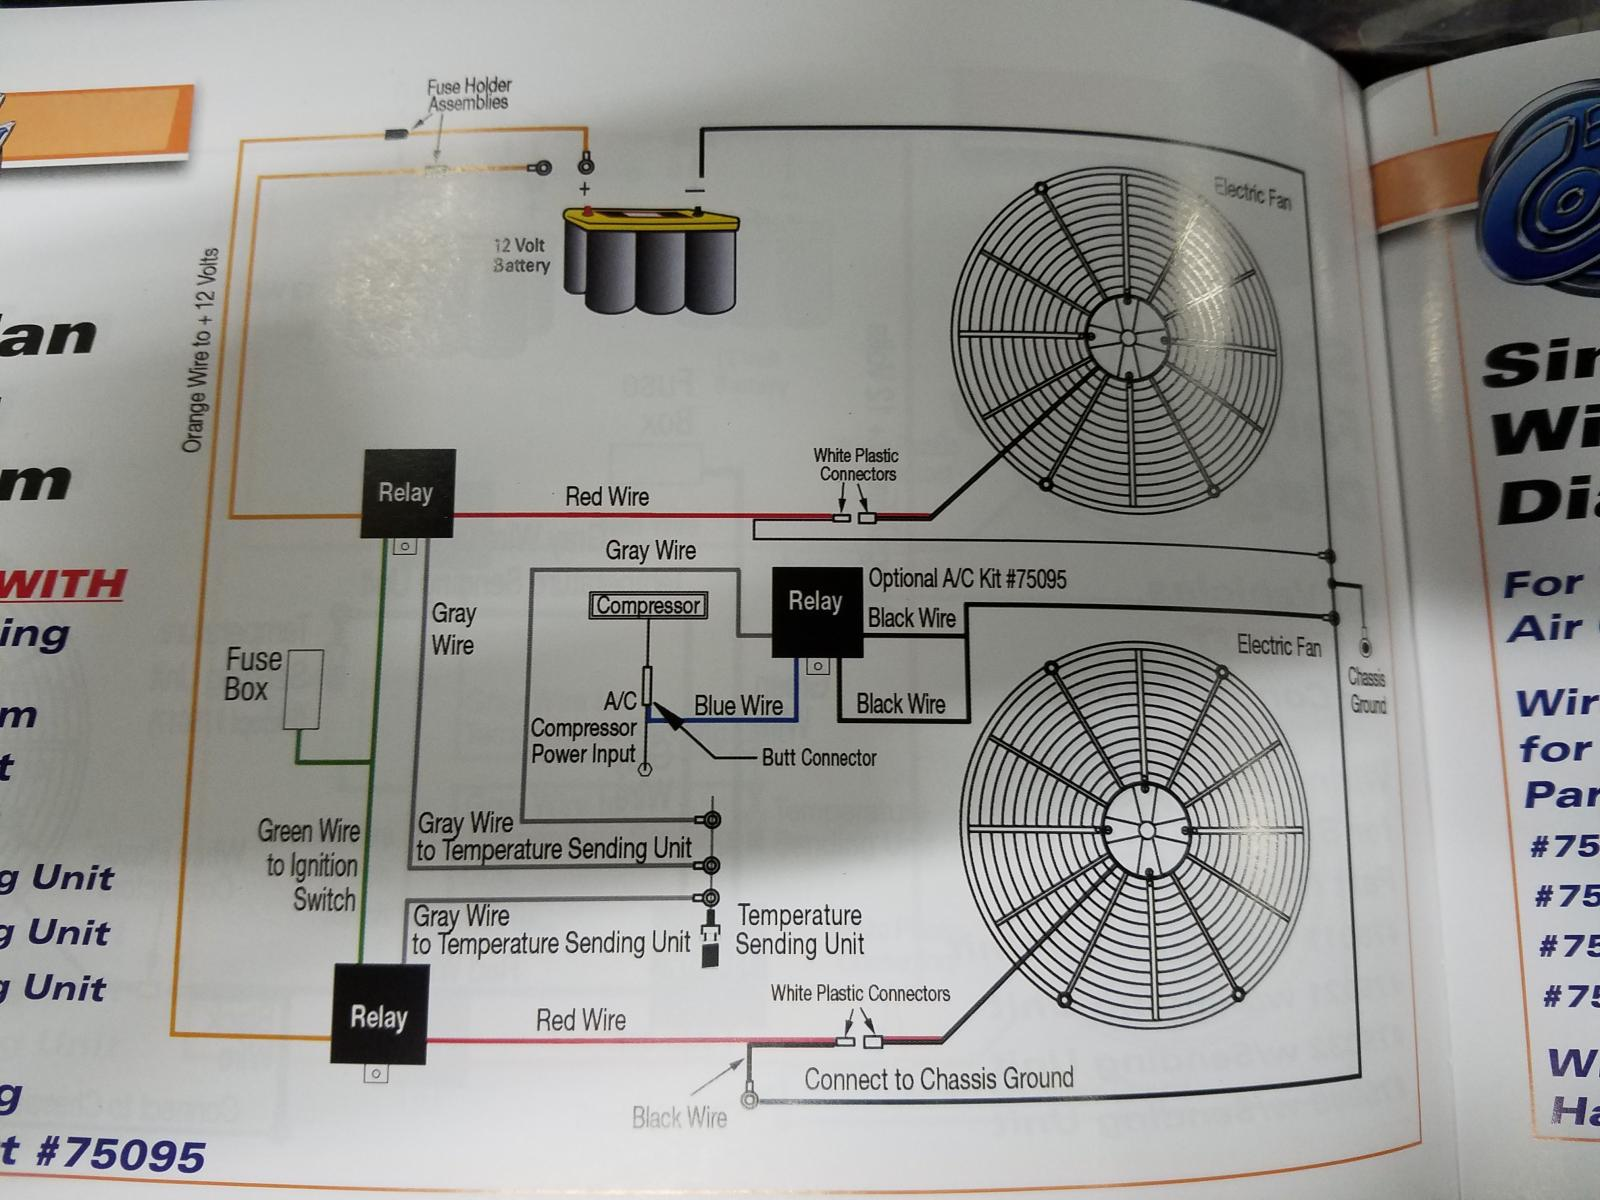 Vintage Air Trinary Switch Wiring Diagram | Wiring Liry on